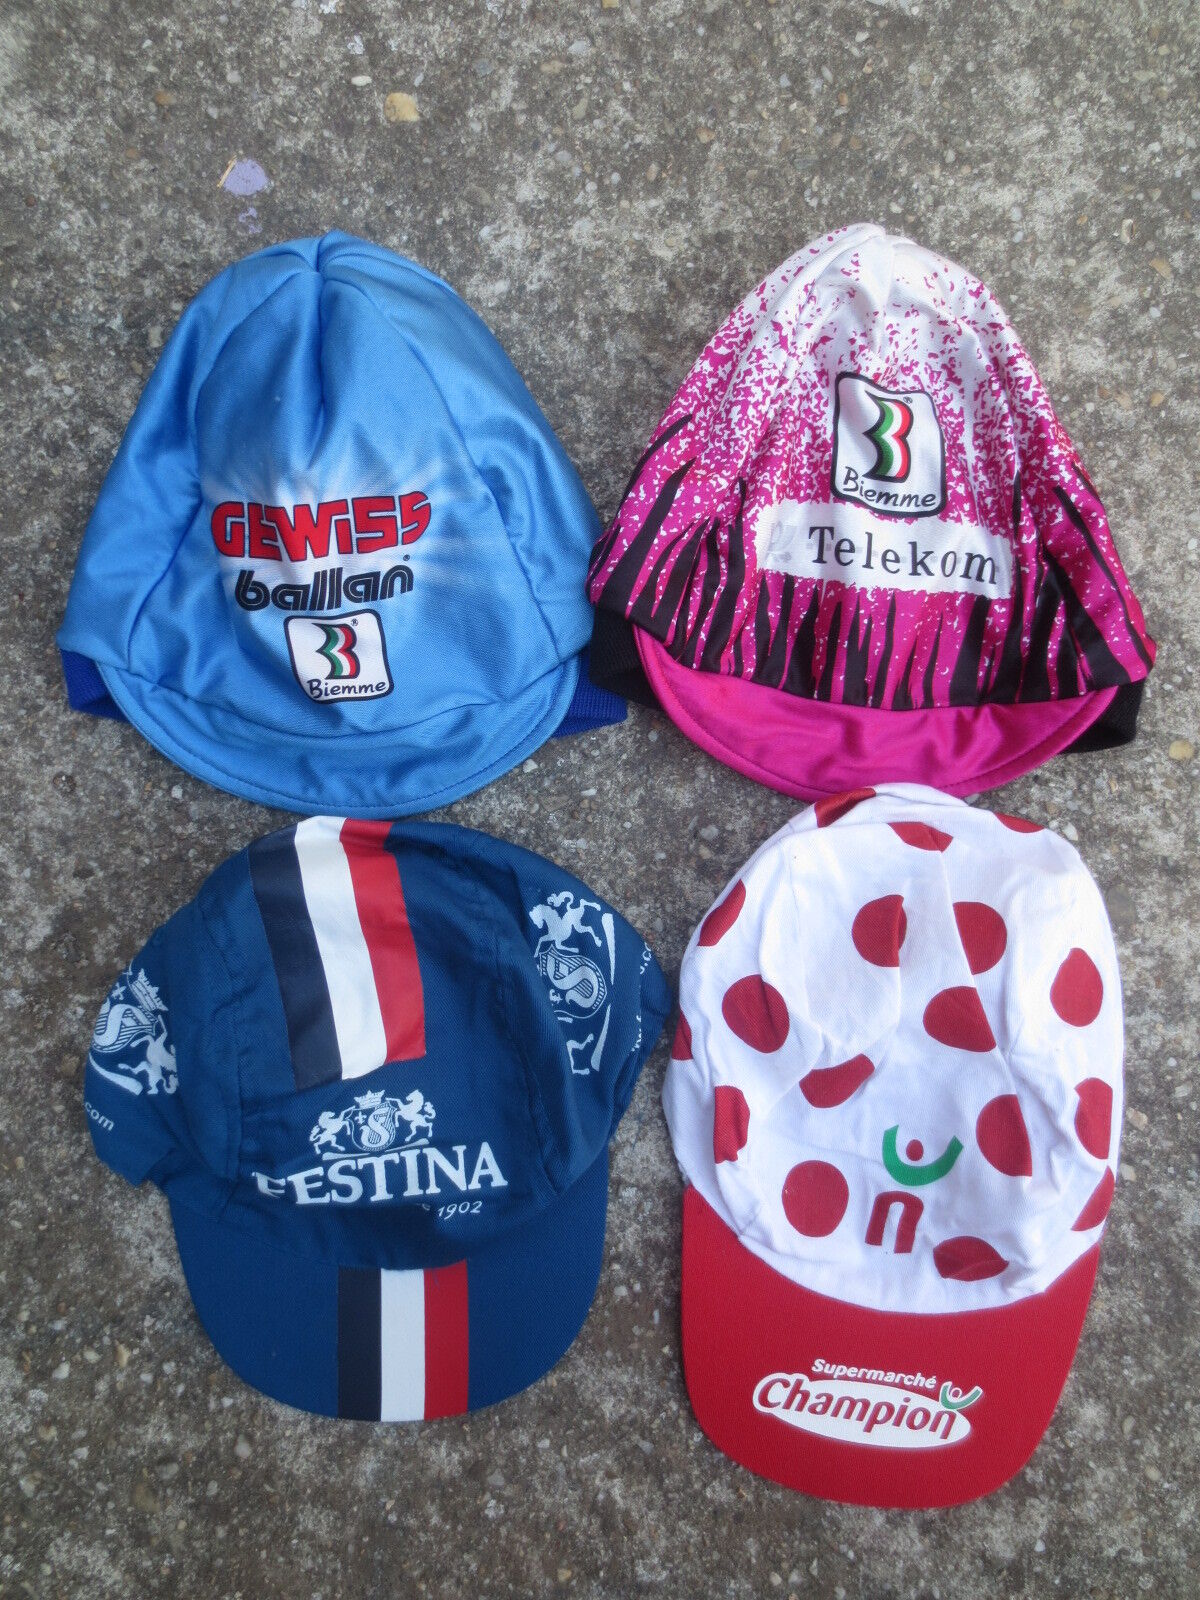 Lot 4 Casquette Bonnet cycliste Tour  de FRANCE FESTINA TELEKOM GEWISS BALLAN cap  save 50%-75%off